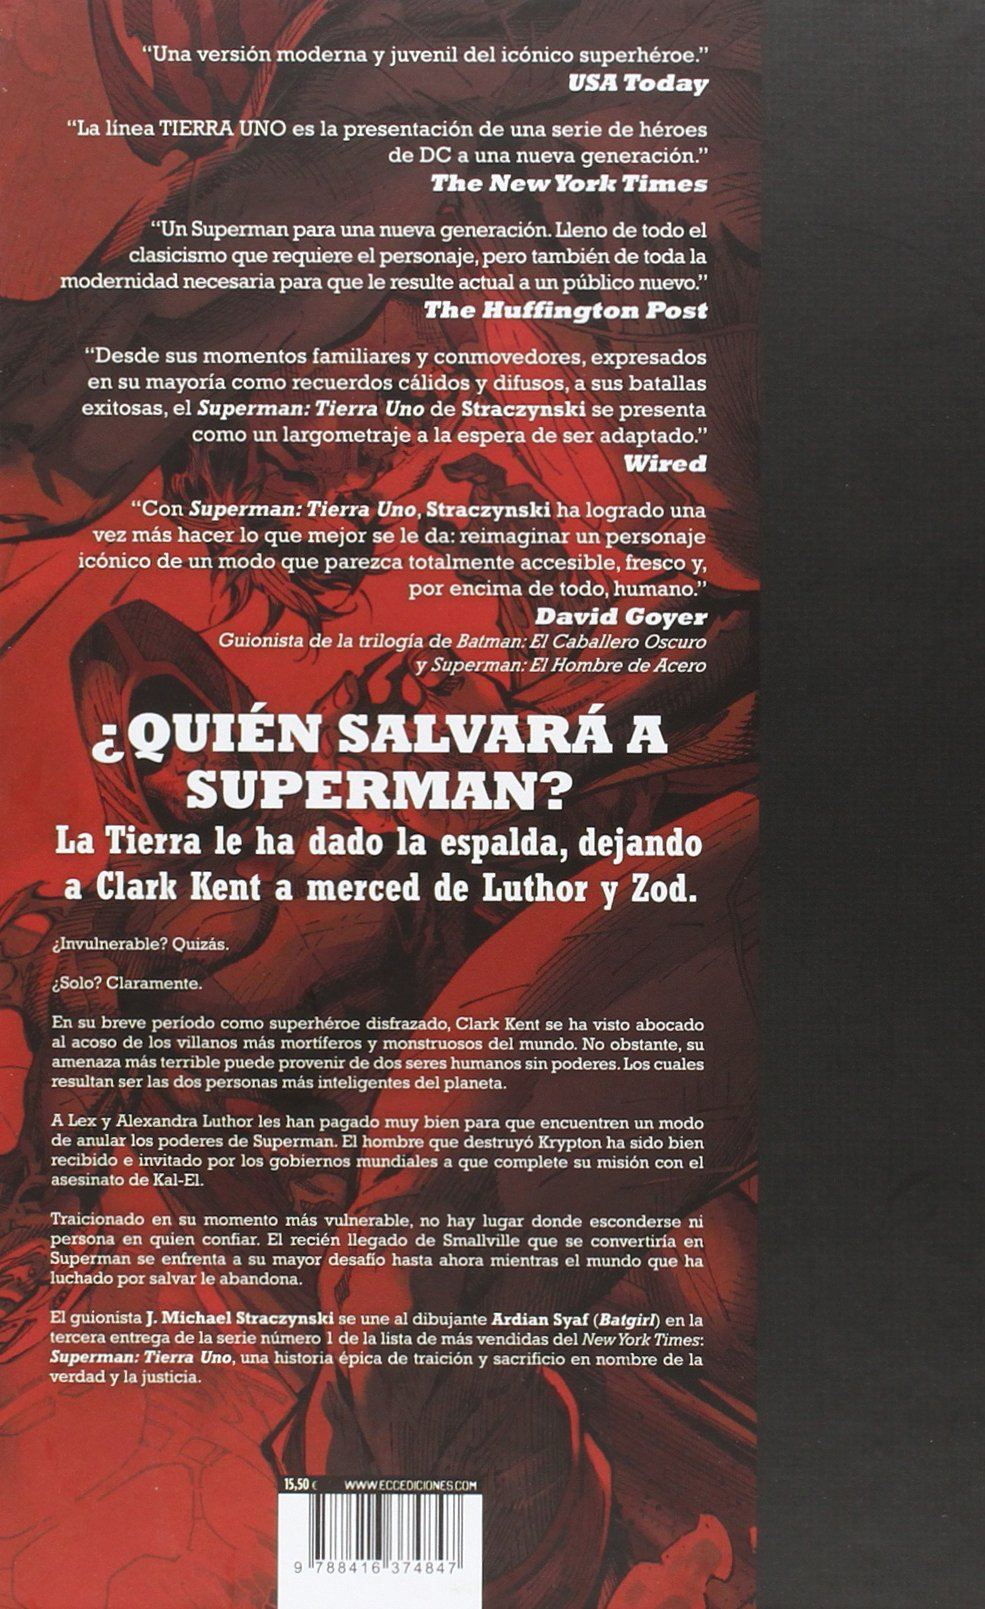 Superman: Tierra uno vol. 3: STRACZYNSKI(374847): 9788416374847: Amazon.com: Books